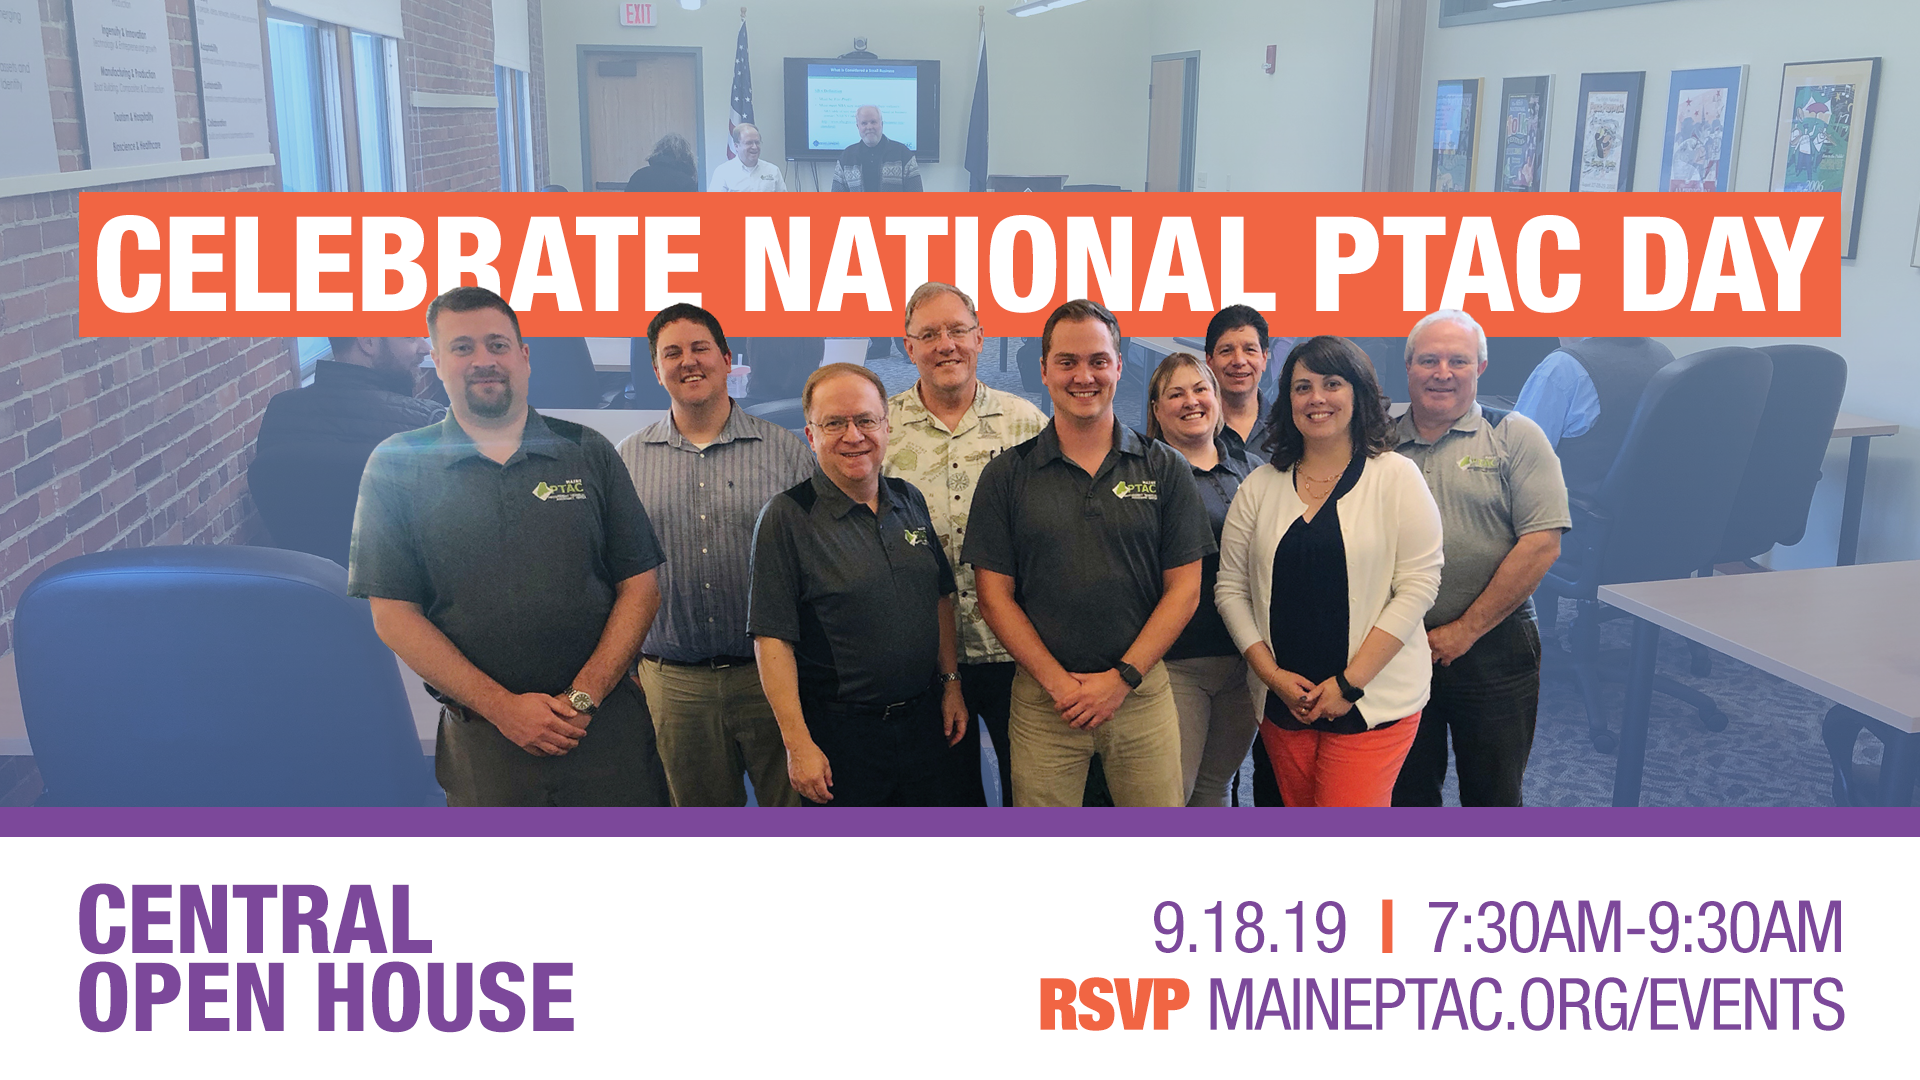 Maine PTAC team hosts central open house 9/18